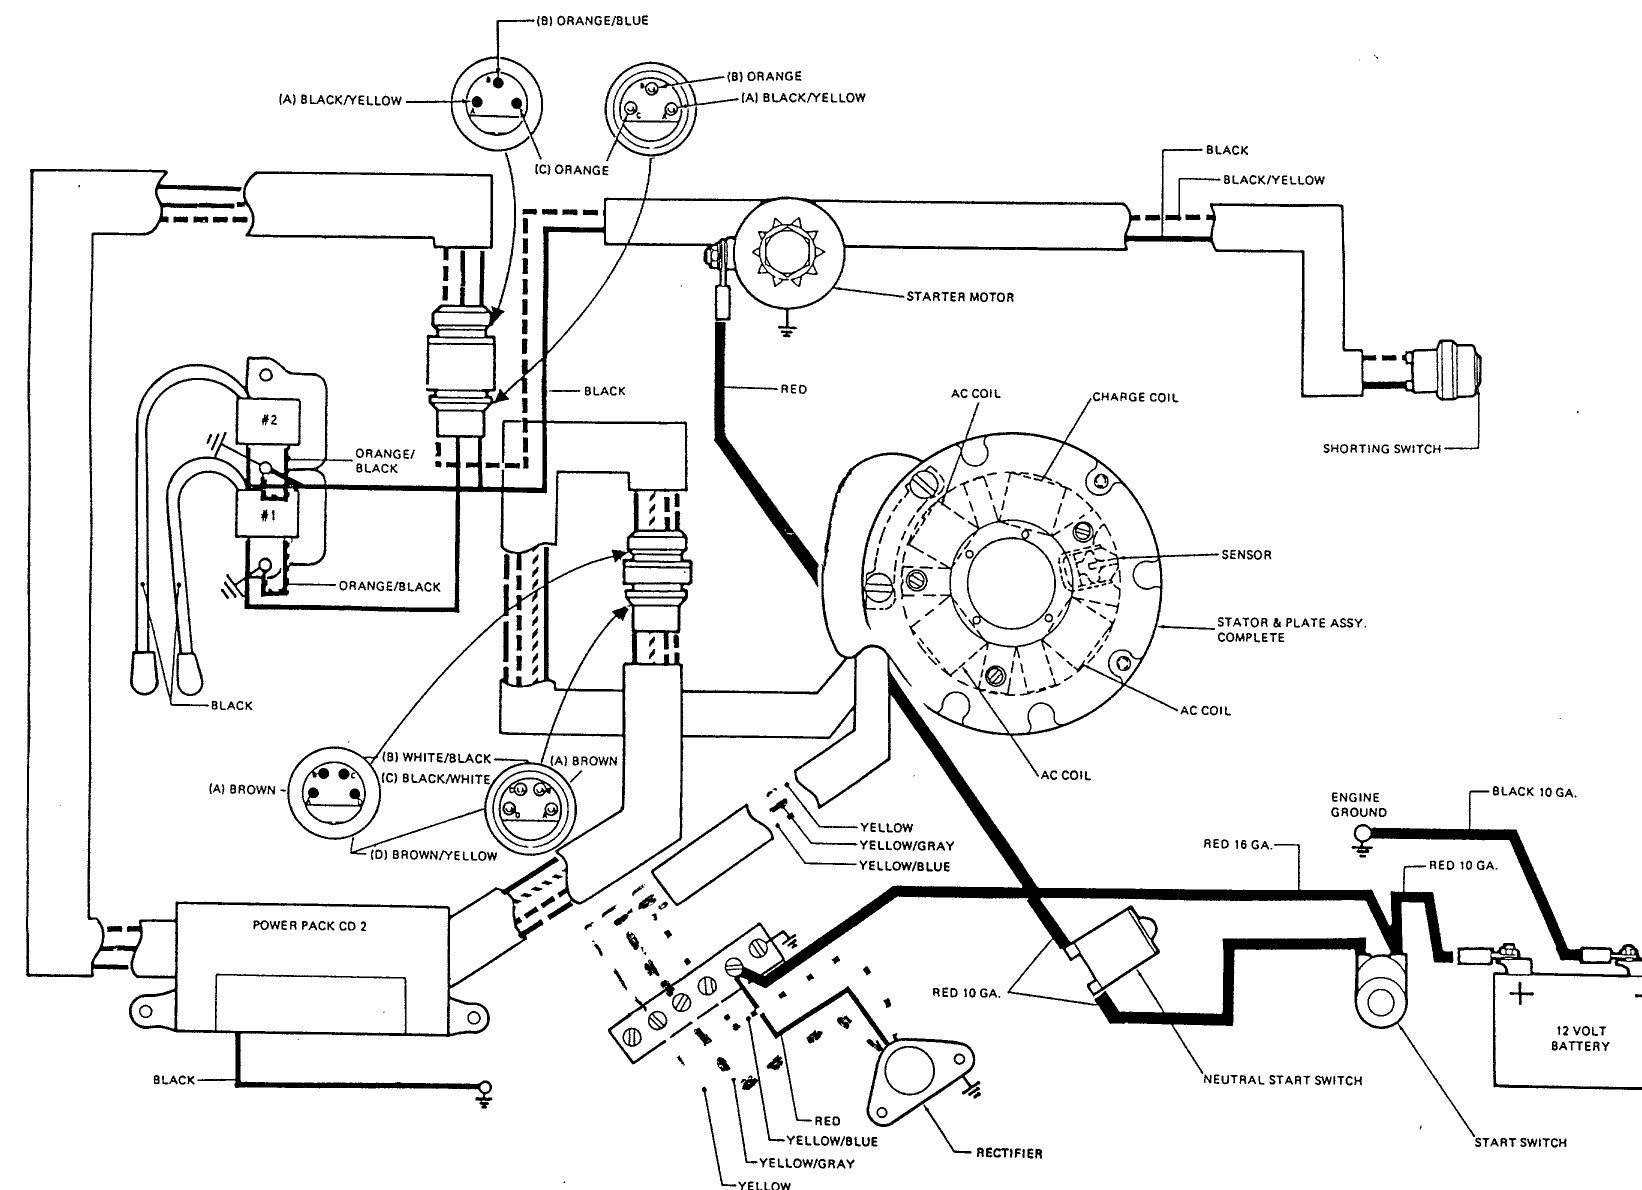 hight resolution of mercury 9 wiring diagram wiring library rh 87 skriptoase de mccormick xtx 185 wire diagram 1956 johnson 30 hp magneto wiring diagram